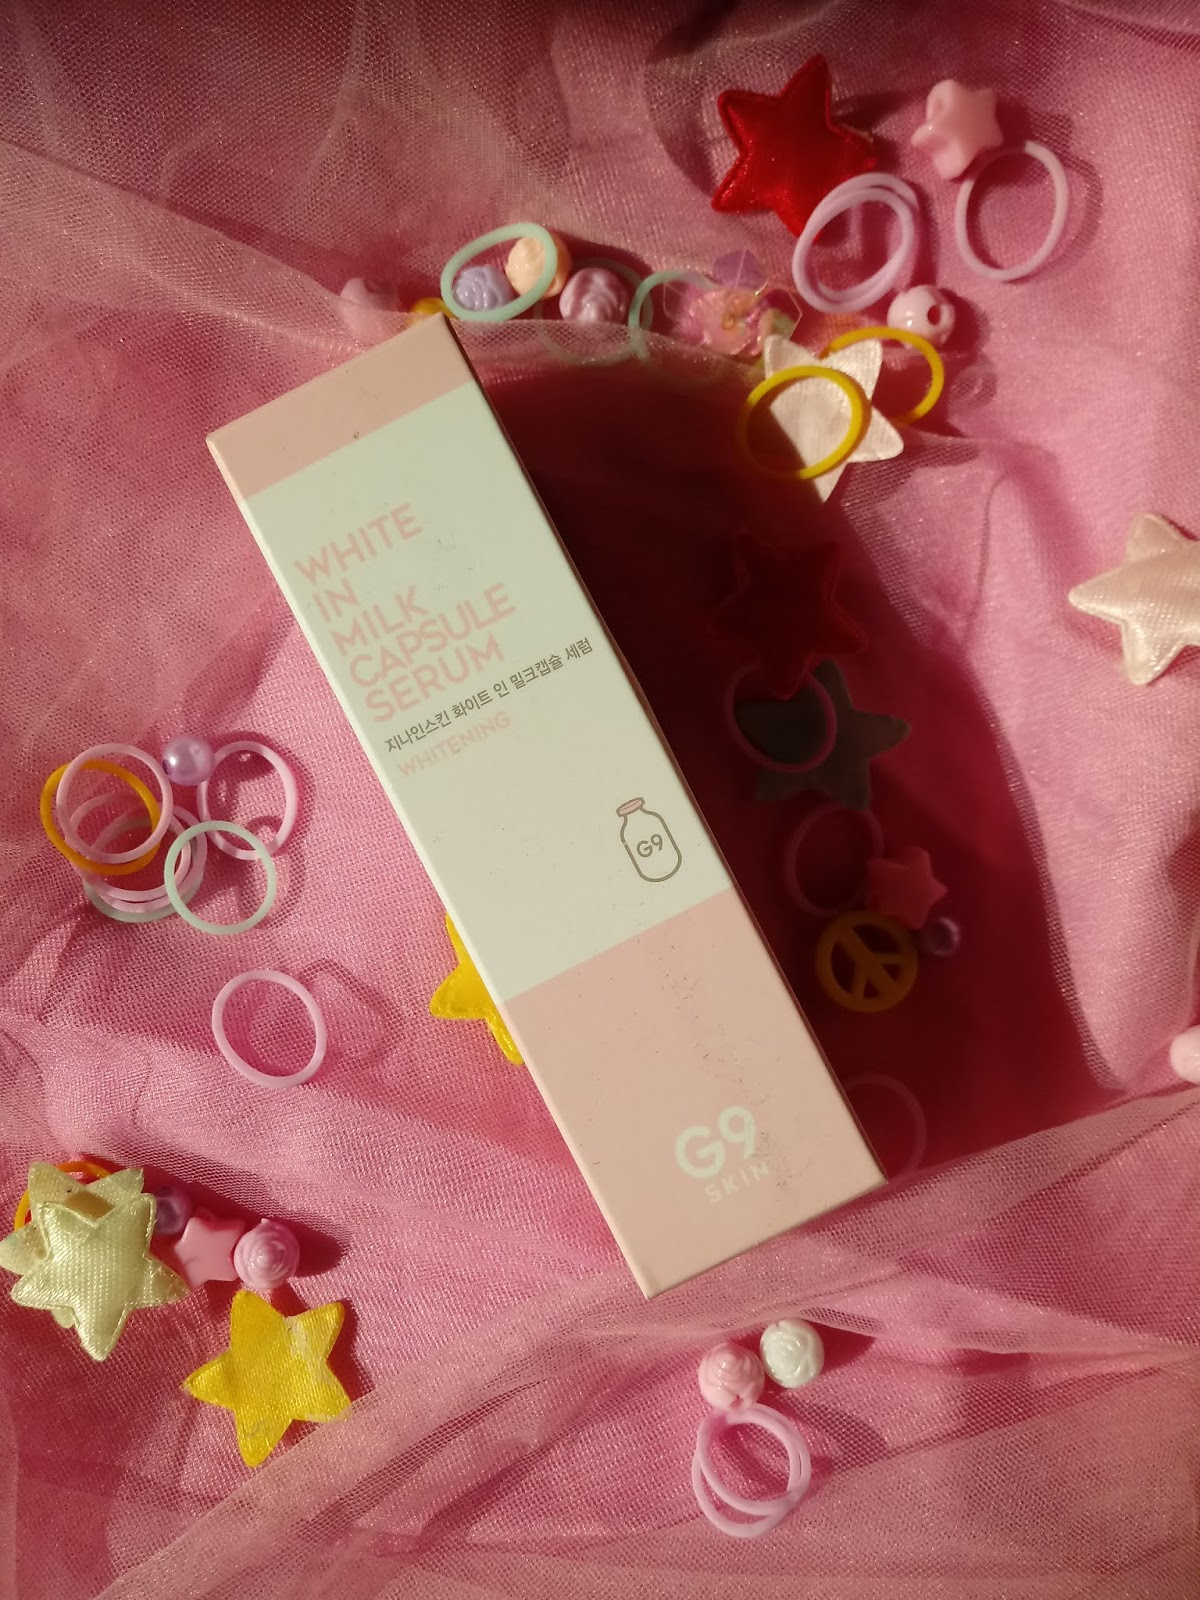 g9skin white in milk capsule serum review